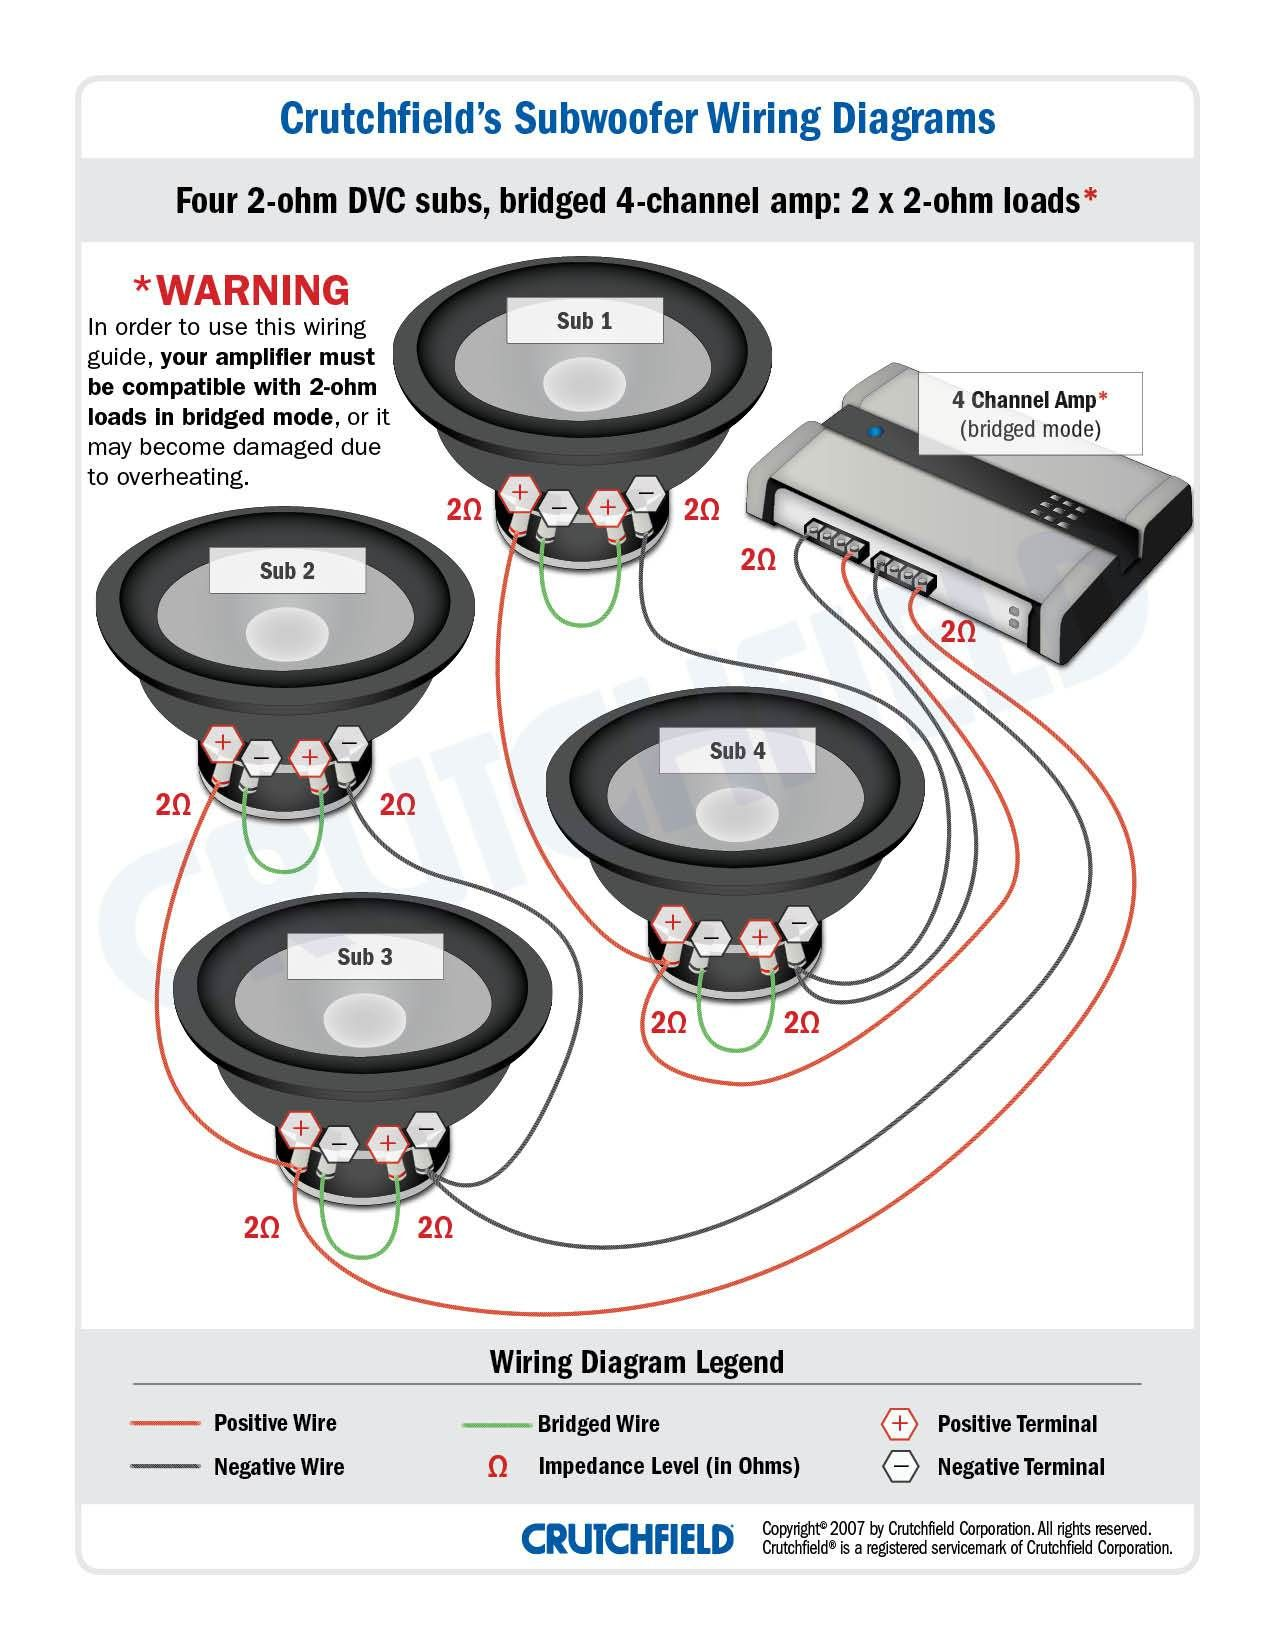 subwoofer wiring diagrams throughout 4 ohm dual voice coil diagramsubwoofer wiring diagrams throughout 4 ohm dual voice coil diagram inside 1